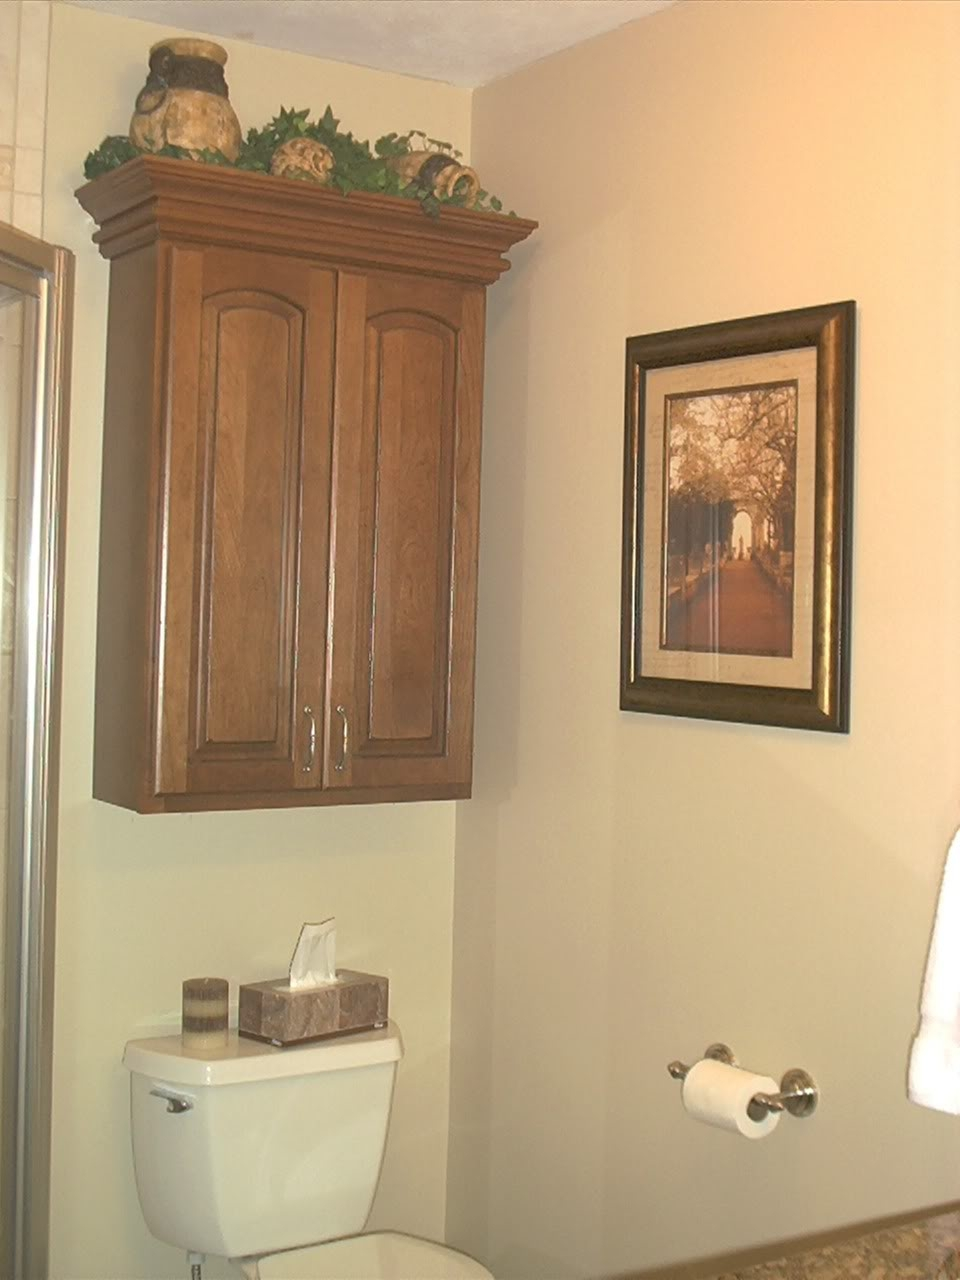 Bathroom Cabinets Above Toiletbathroom storage cabinets over toilet wall cabinet above toilet